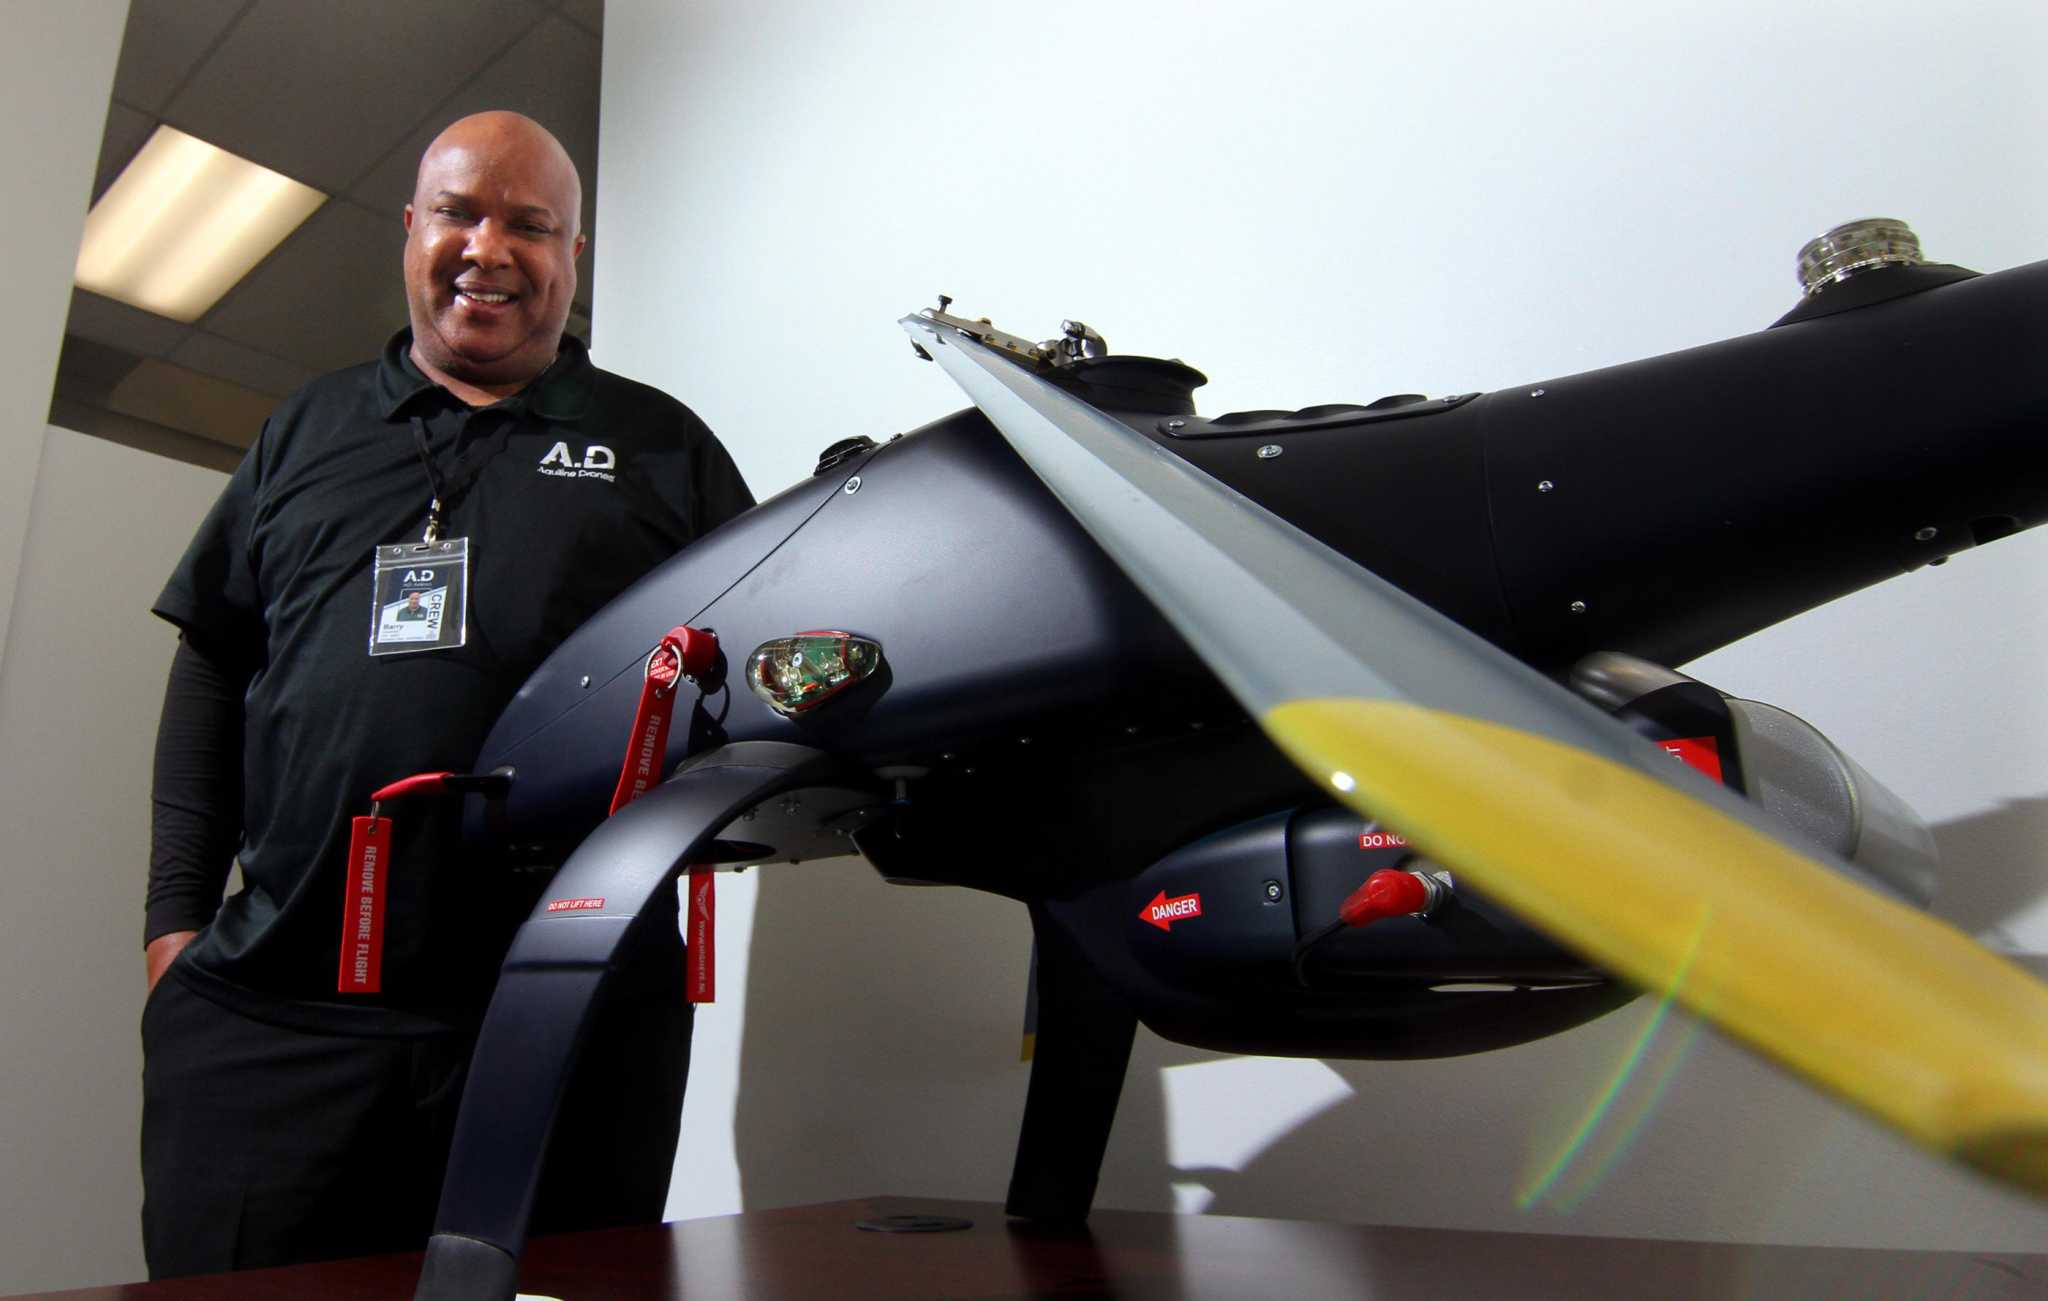 Hartford-based Aquiline Drones wants to make CT a 'drone capital'